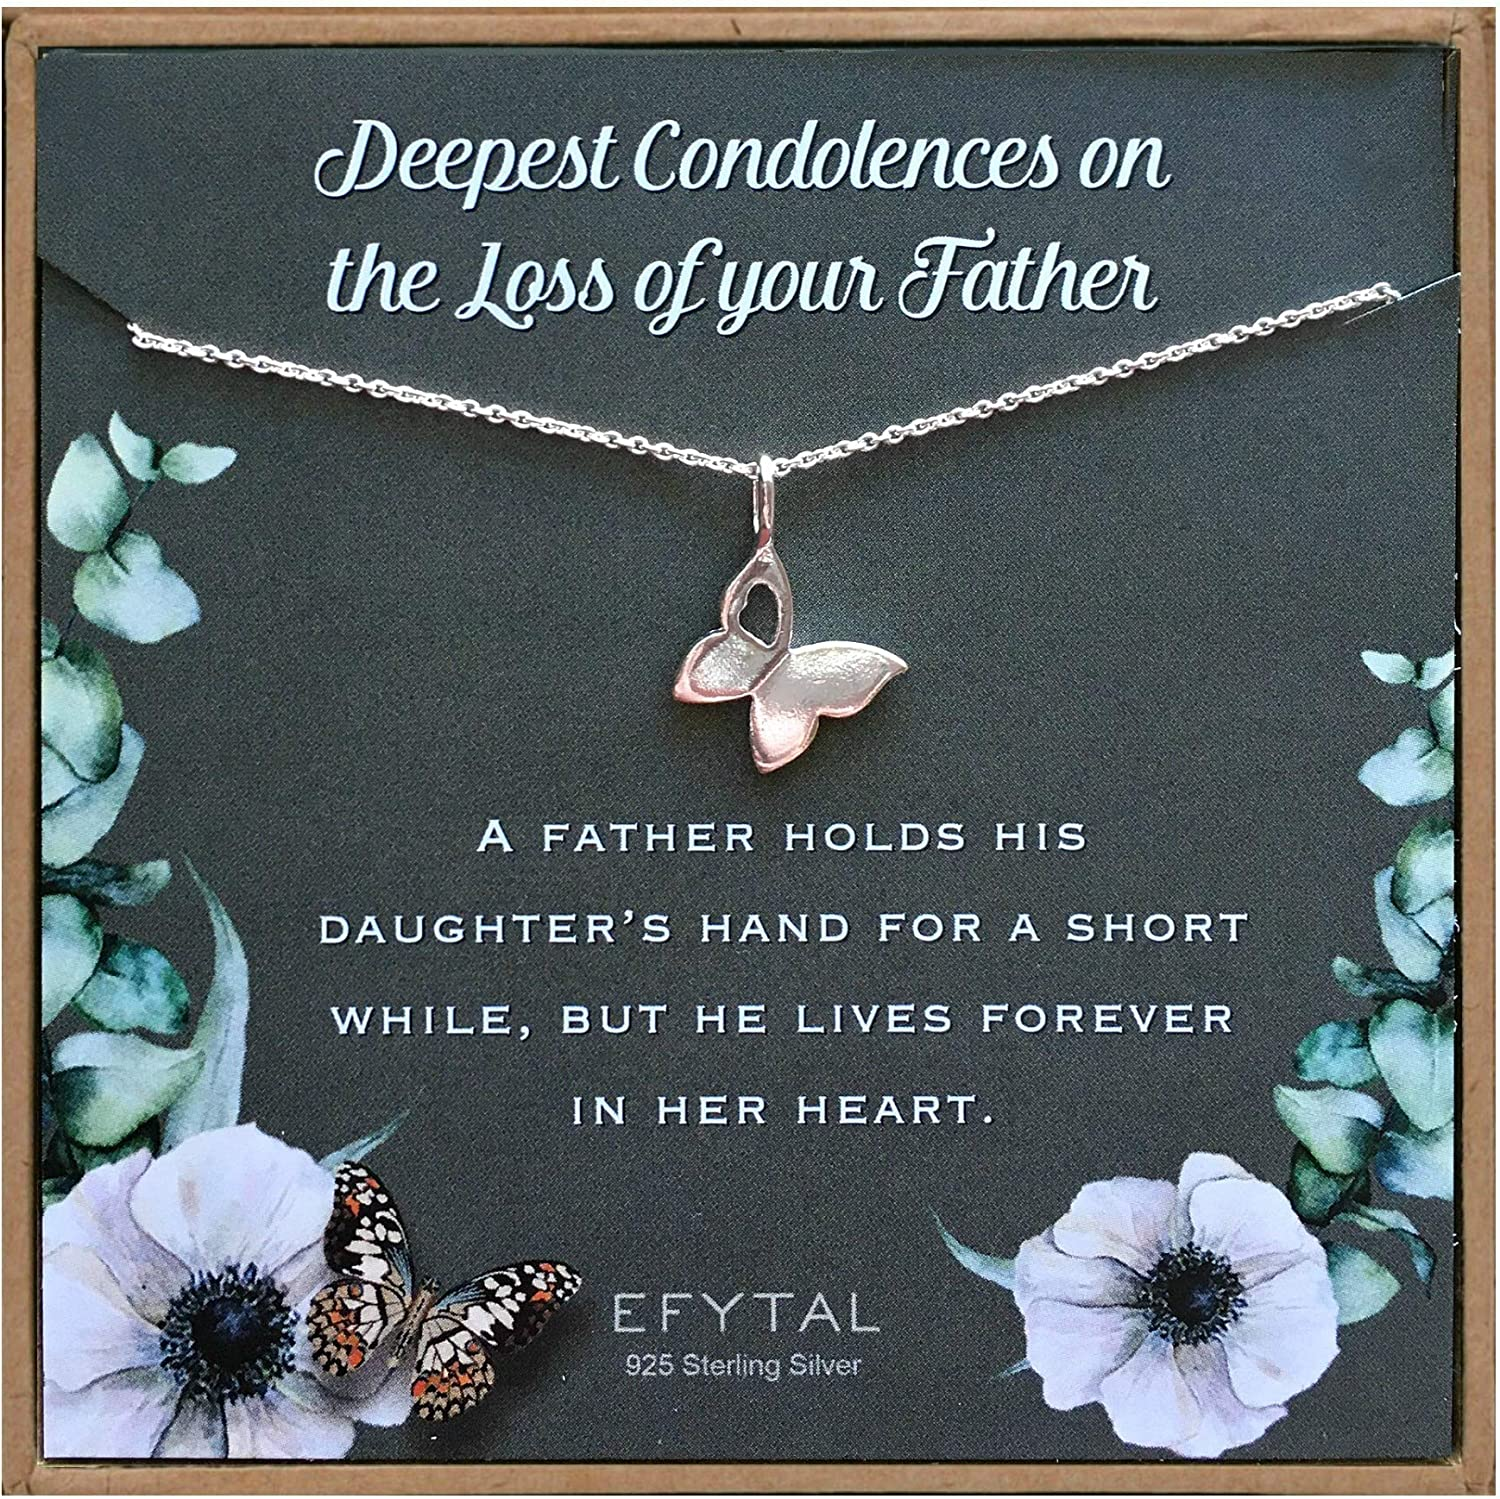 EFYTAL Condolence Gifts Cash special price 925 Silver Max 85% OFF Butterfly Sterling Necklace